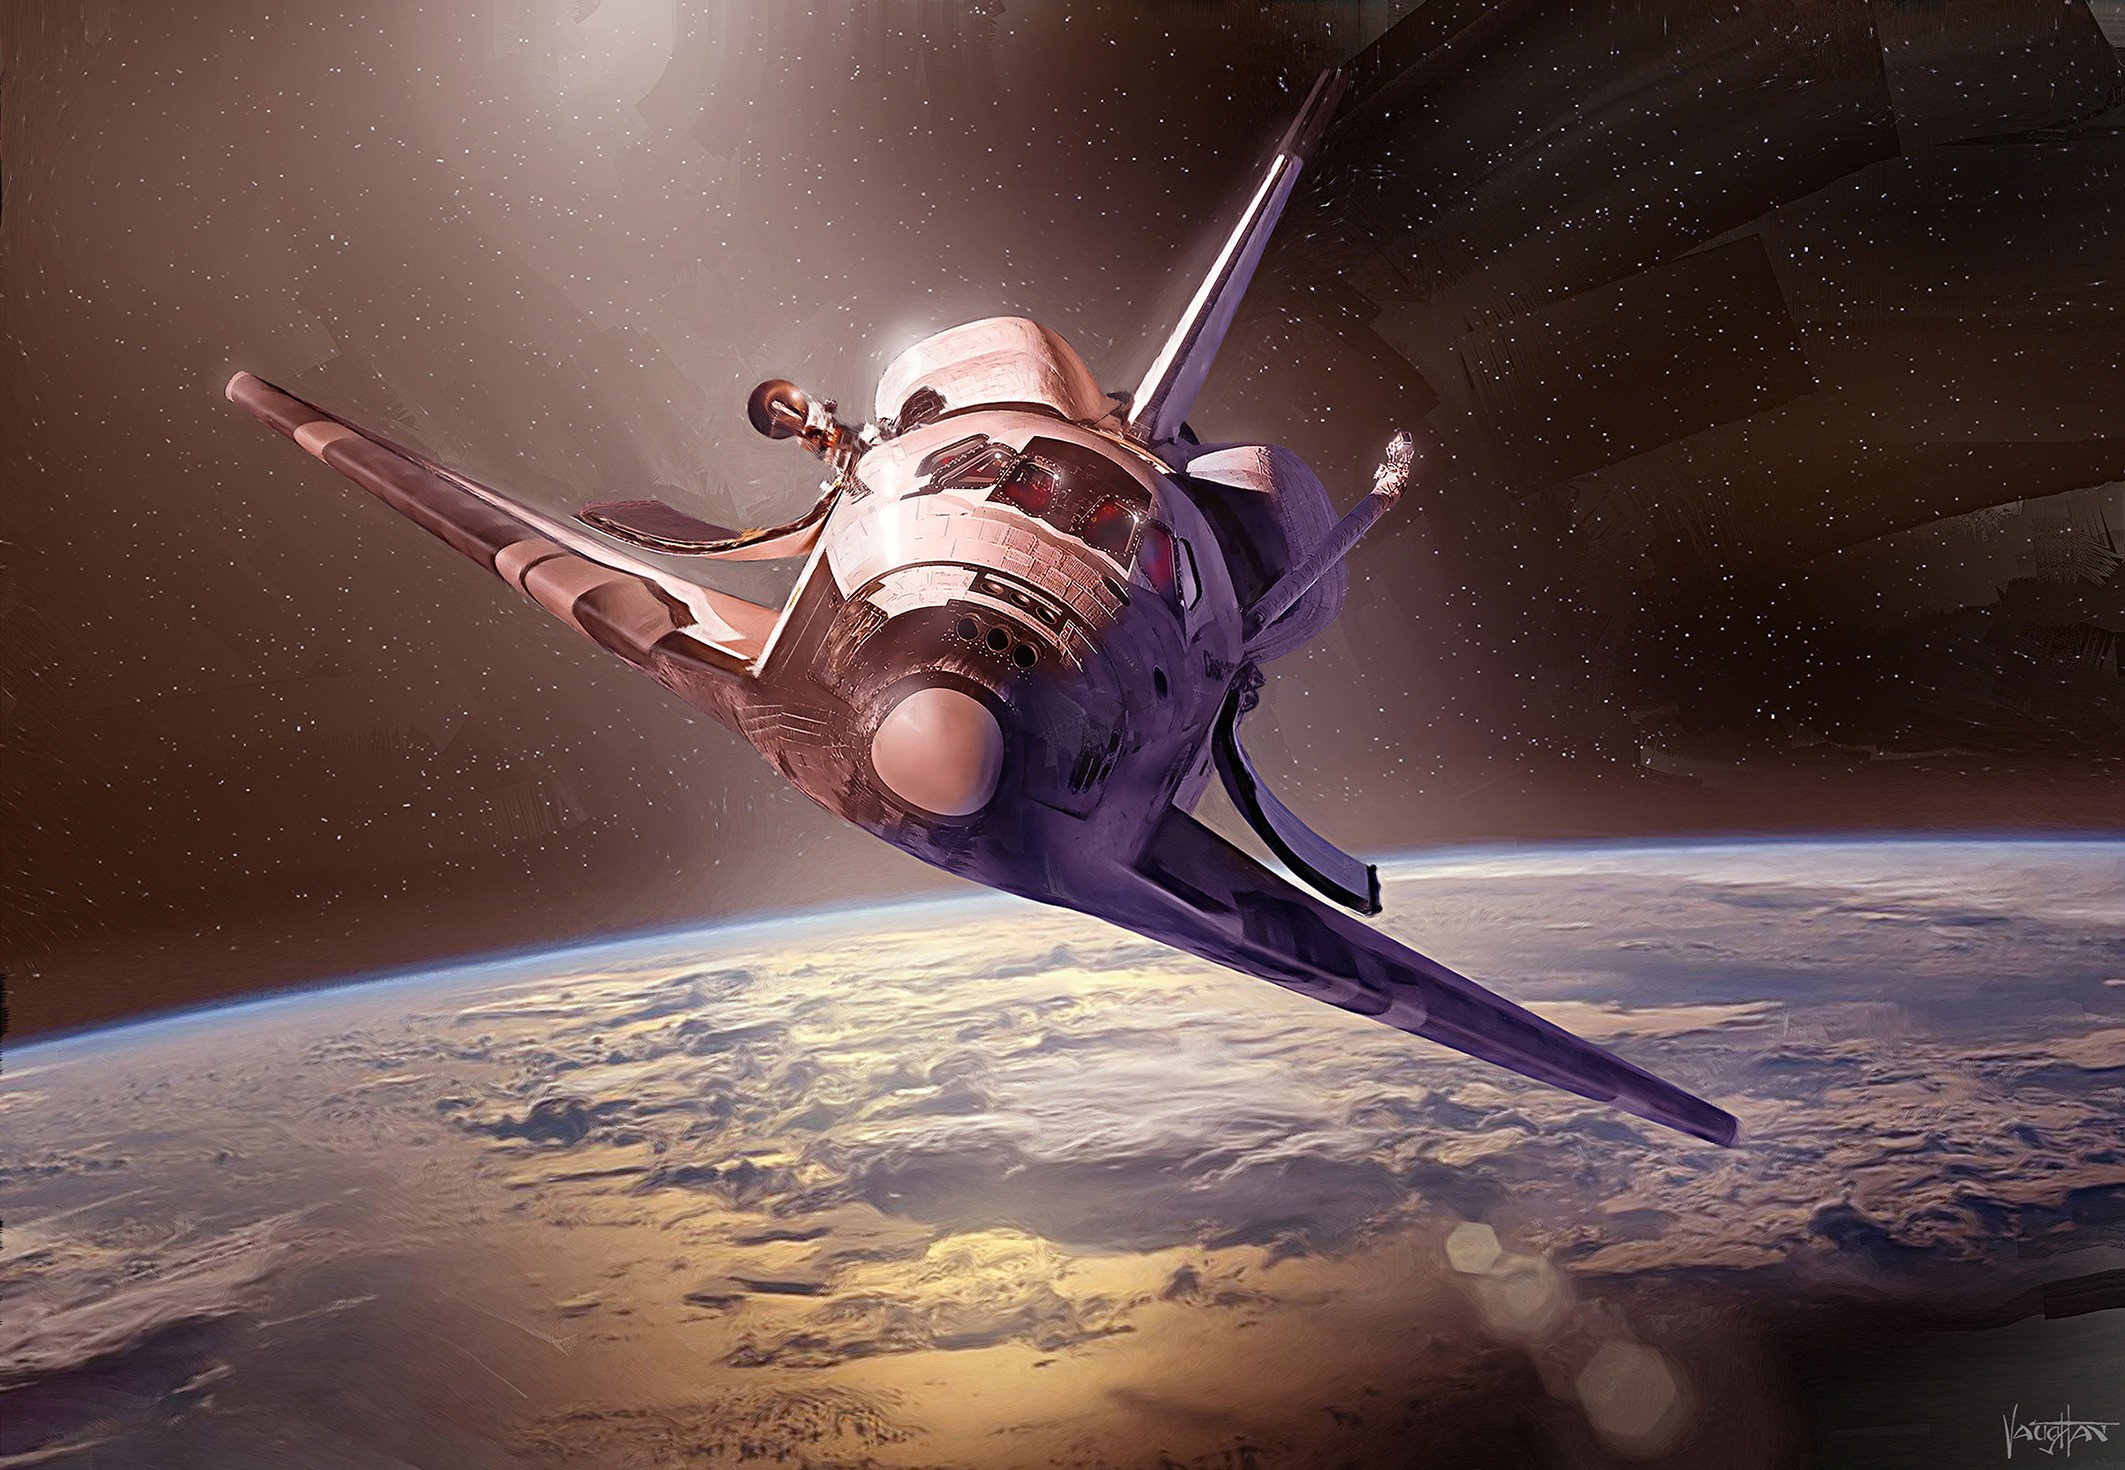 Space Shuttle - New HD Wallpapers